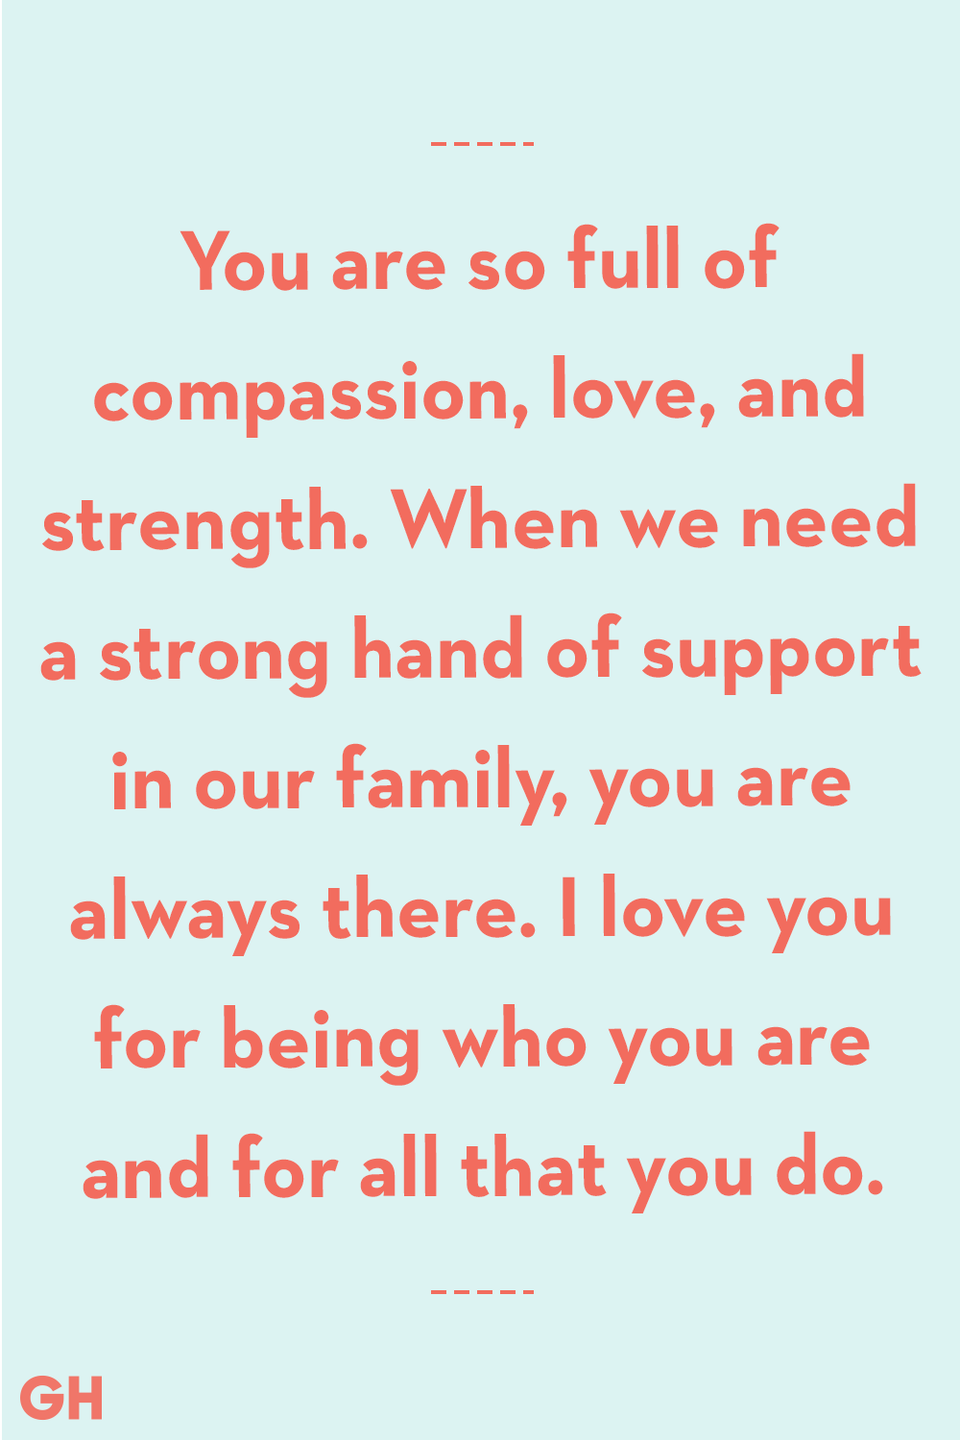 <p>You are so full of compassion, love, and strength. When we need a strong hand of support in our family, you are always there. I love you for being who you are and for all that you do.</p>